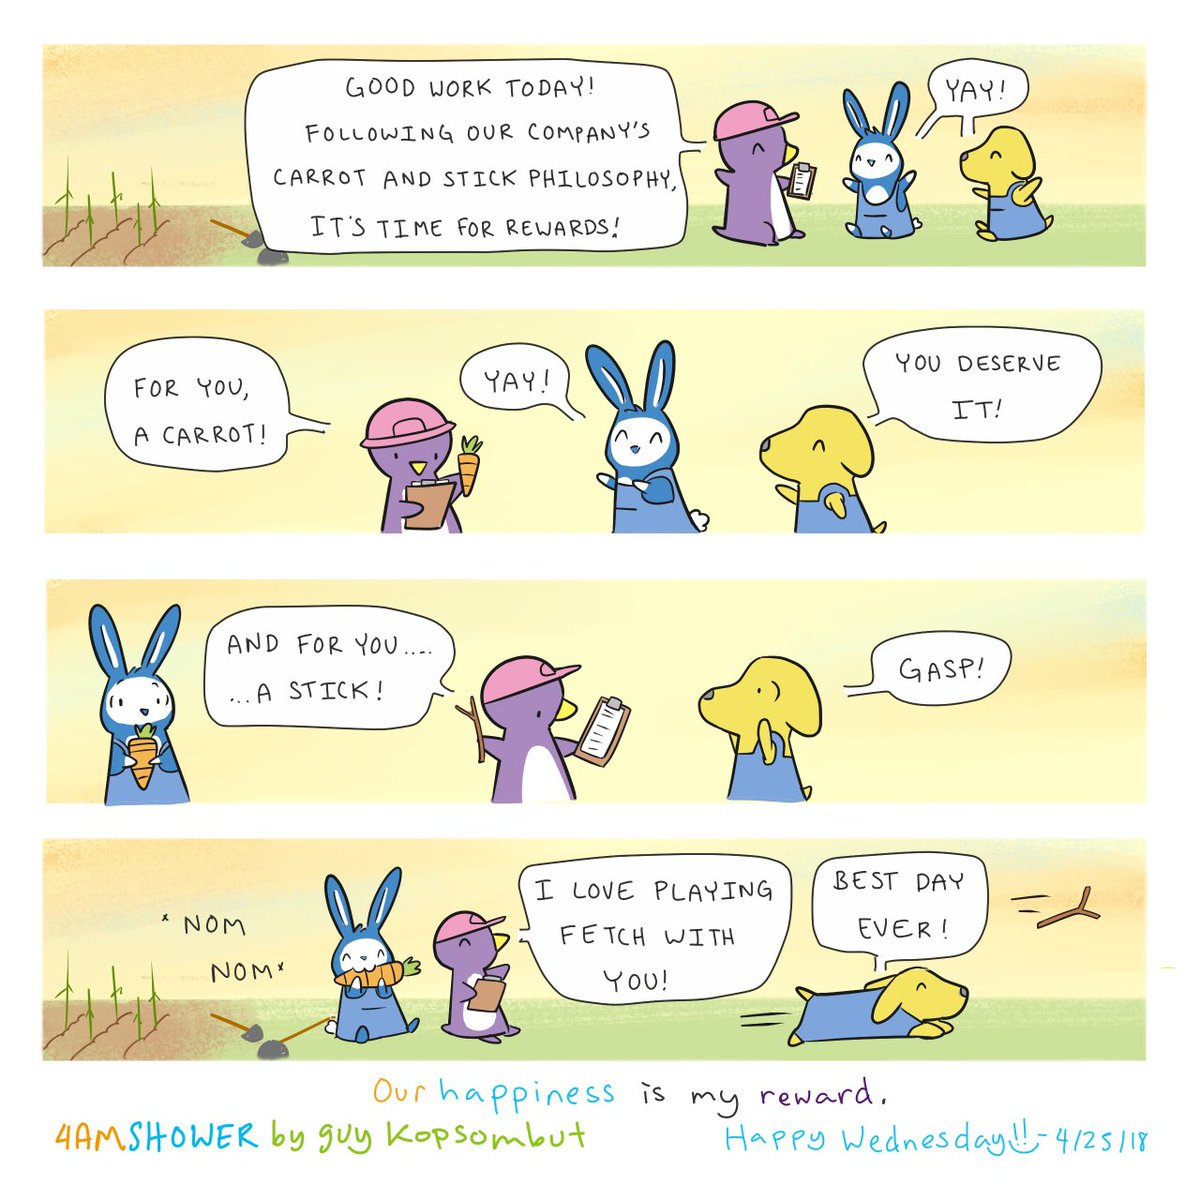 Policy. Today's smile goal: reward yourself If this comic helped you , consider pledging at  http://www. Patreon.com/4amshower  &nbsp;  . For prints and commissions, email me at 4amshower@gmail.com :) #happy #cute #wholesome #illustrations #aww #friends #funny #memes #depression #comics #love<br>http://pic.twitter.com/XC8u3n43k8